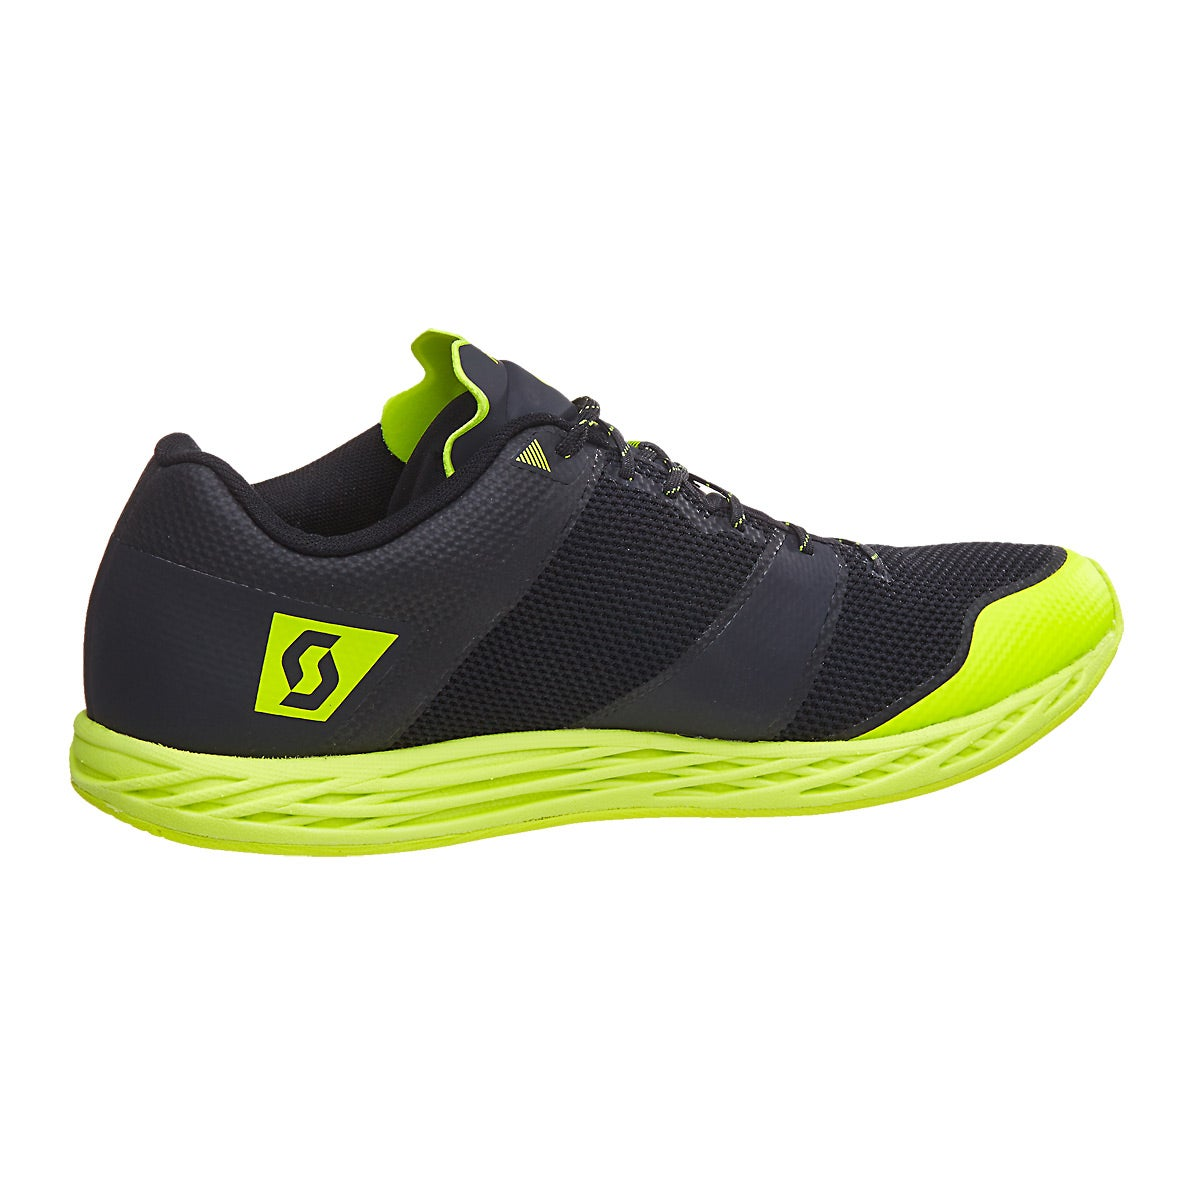 Scott Laufschuhe W's Palani RC black/yellow 10 z5RGRF82mx